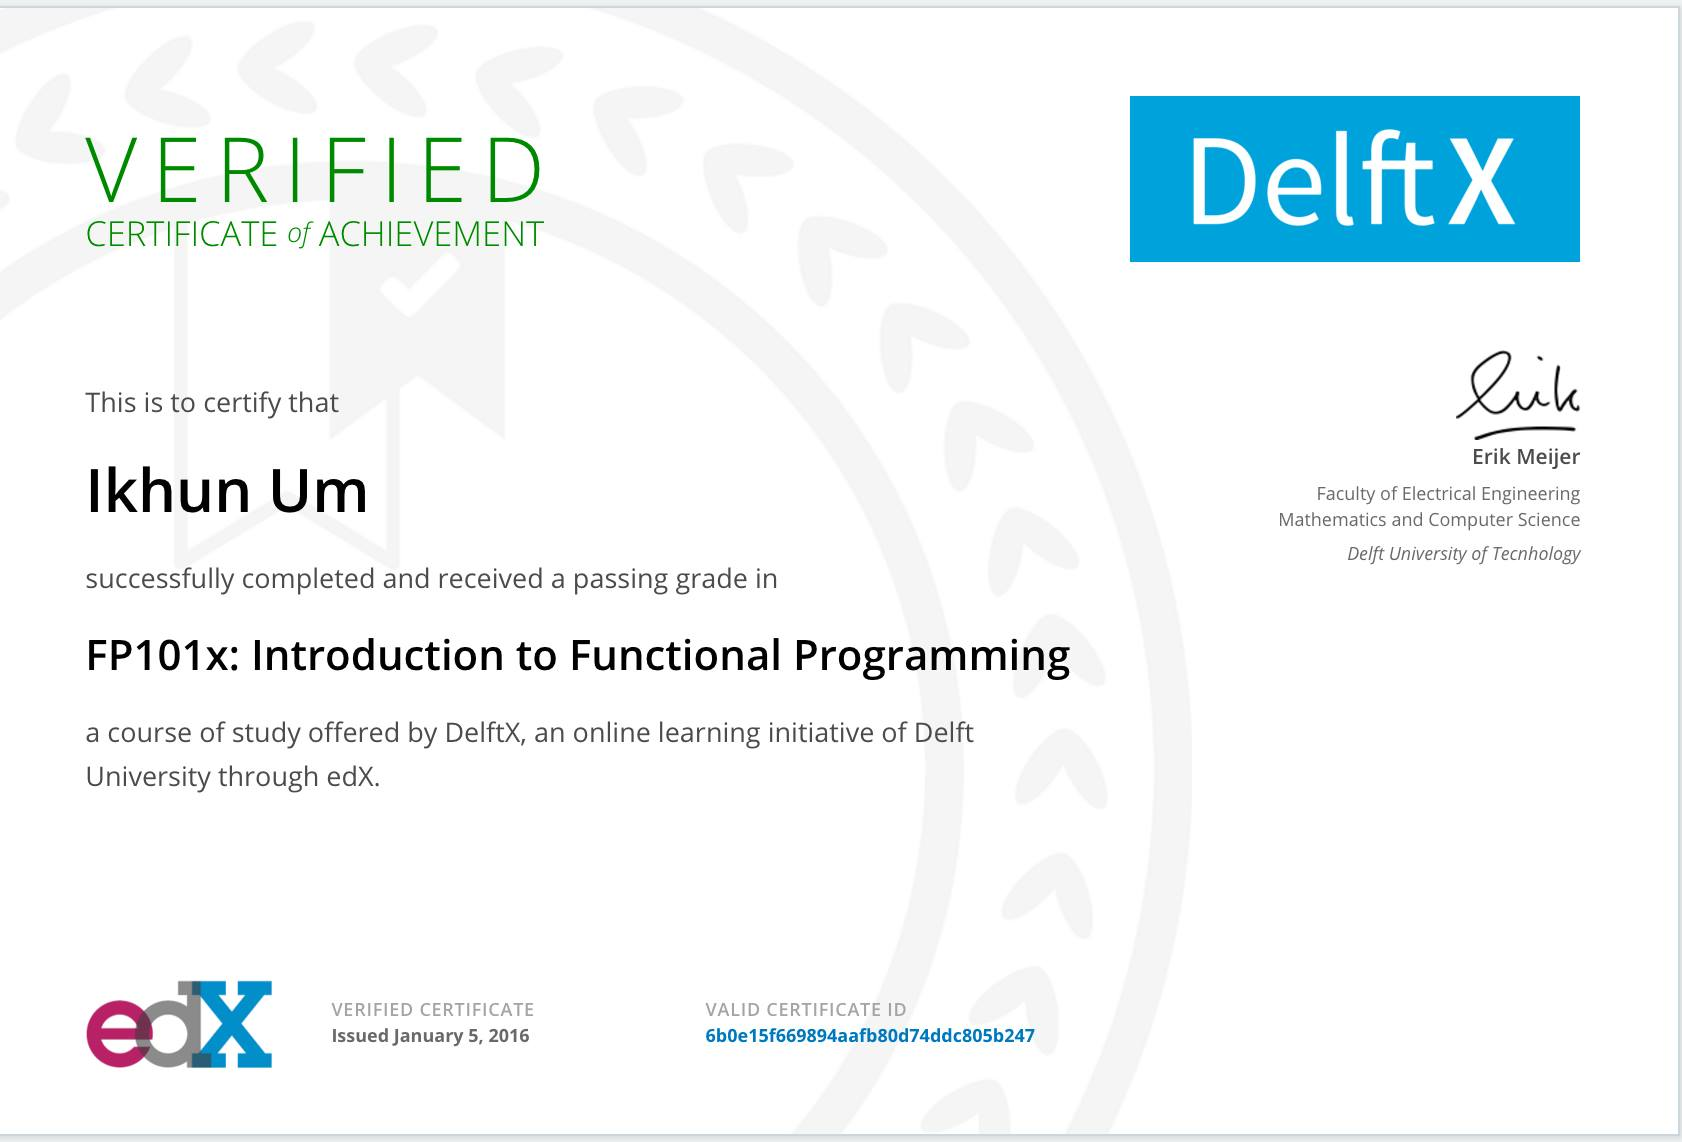 edx.org의 Introduction to Functional Programming 수업 수료후 받음